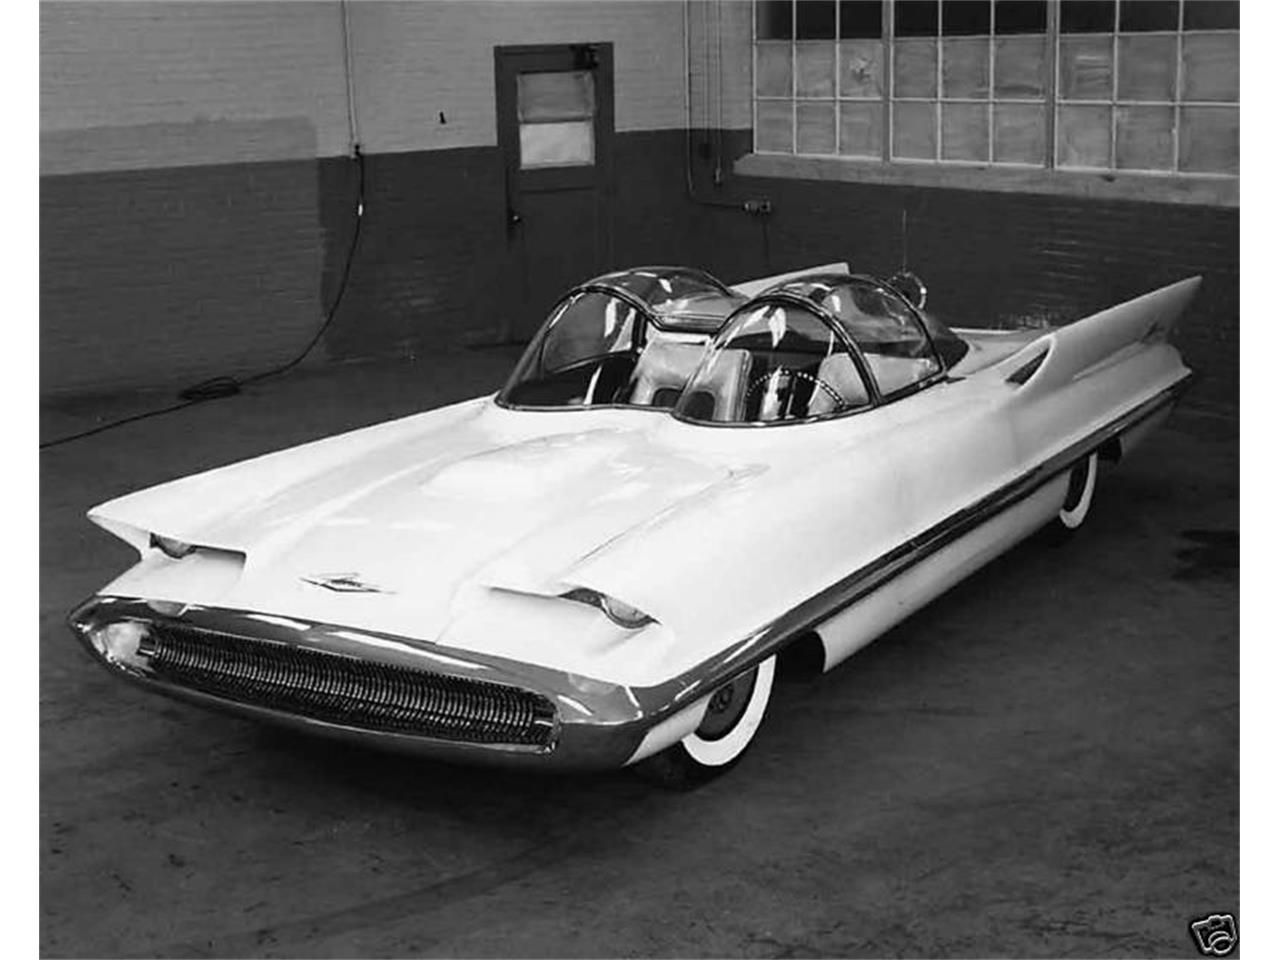 Chevrolet Dealers Az >> 1988 Chevrolet 1955 Lincoln Futura Replica for Sale ...